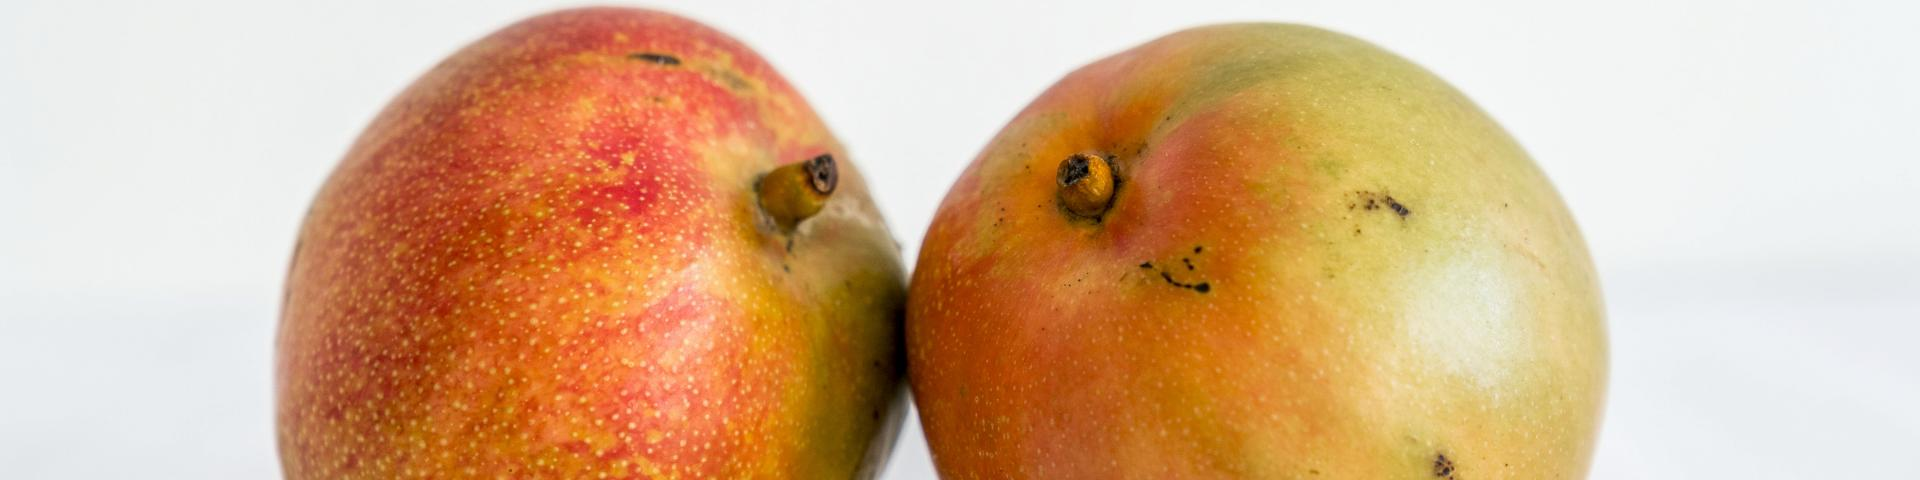 The European Market Potential For Mangoes Cbi Centre For The